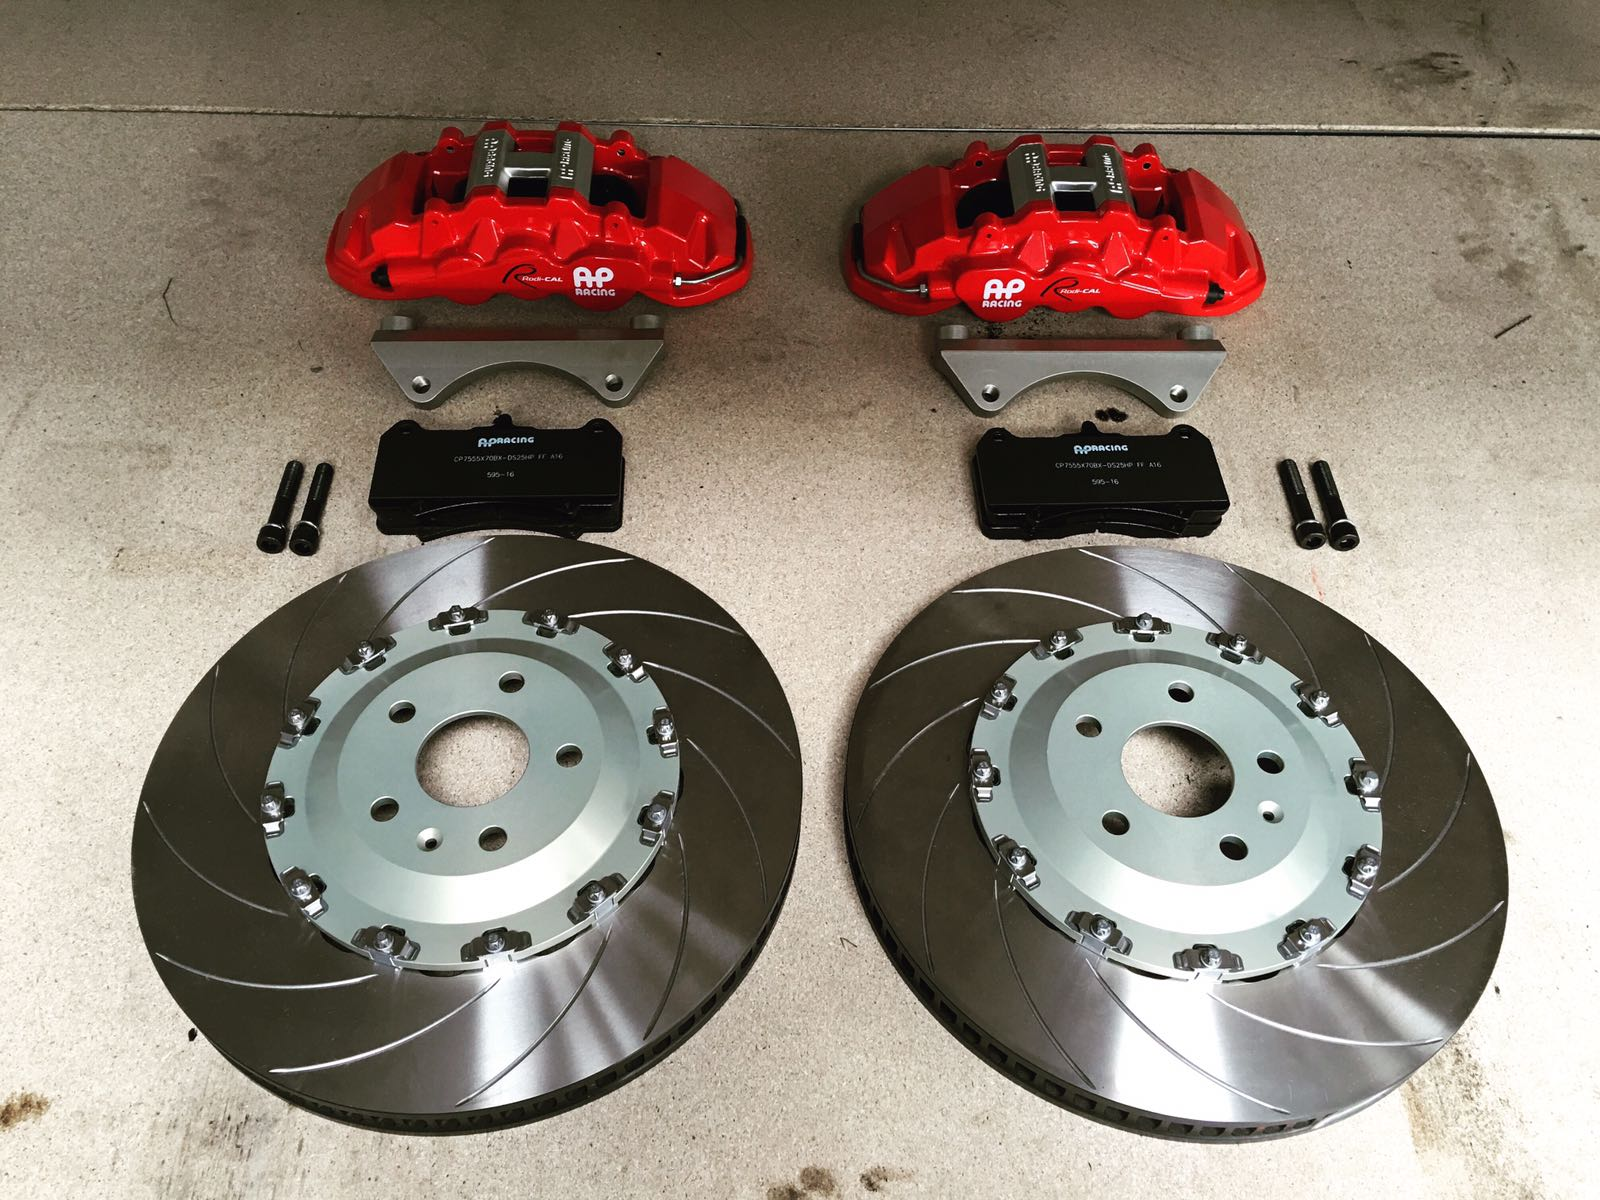 Best Brake Pads Brand >> Ap racing front brake upgrade and rs7 rears | Audi-Sport.net